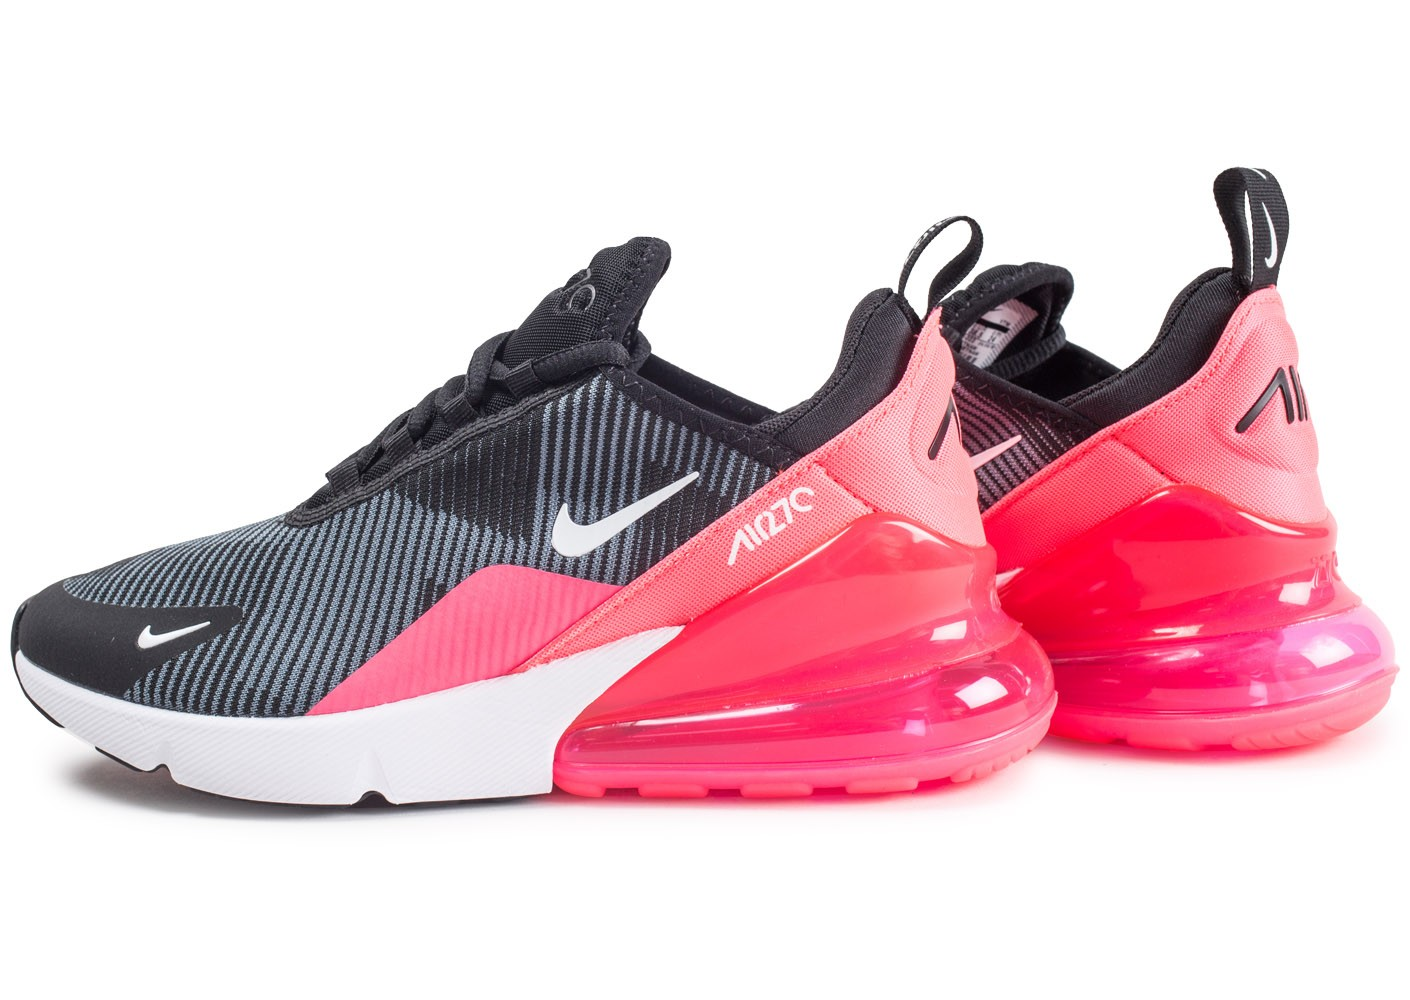 Nike Air Max 270 Knit Jacquard rose - Chaussures Enfant ...